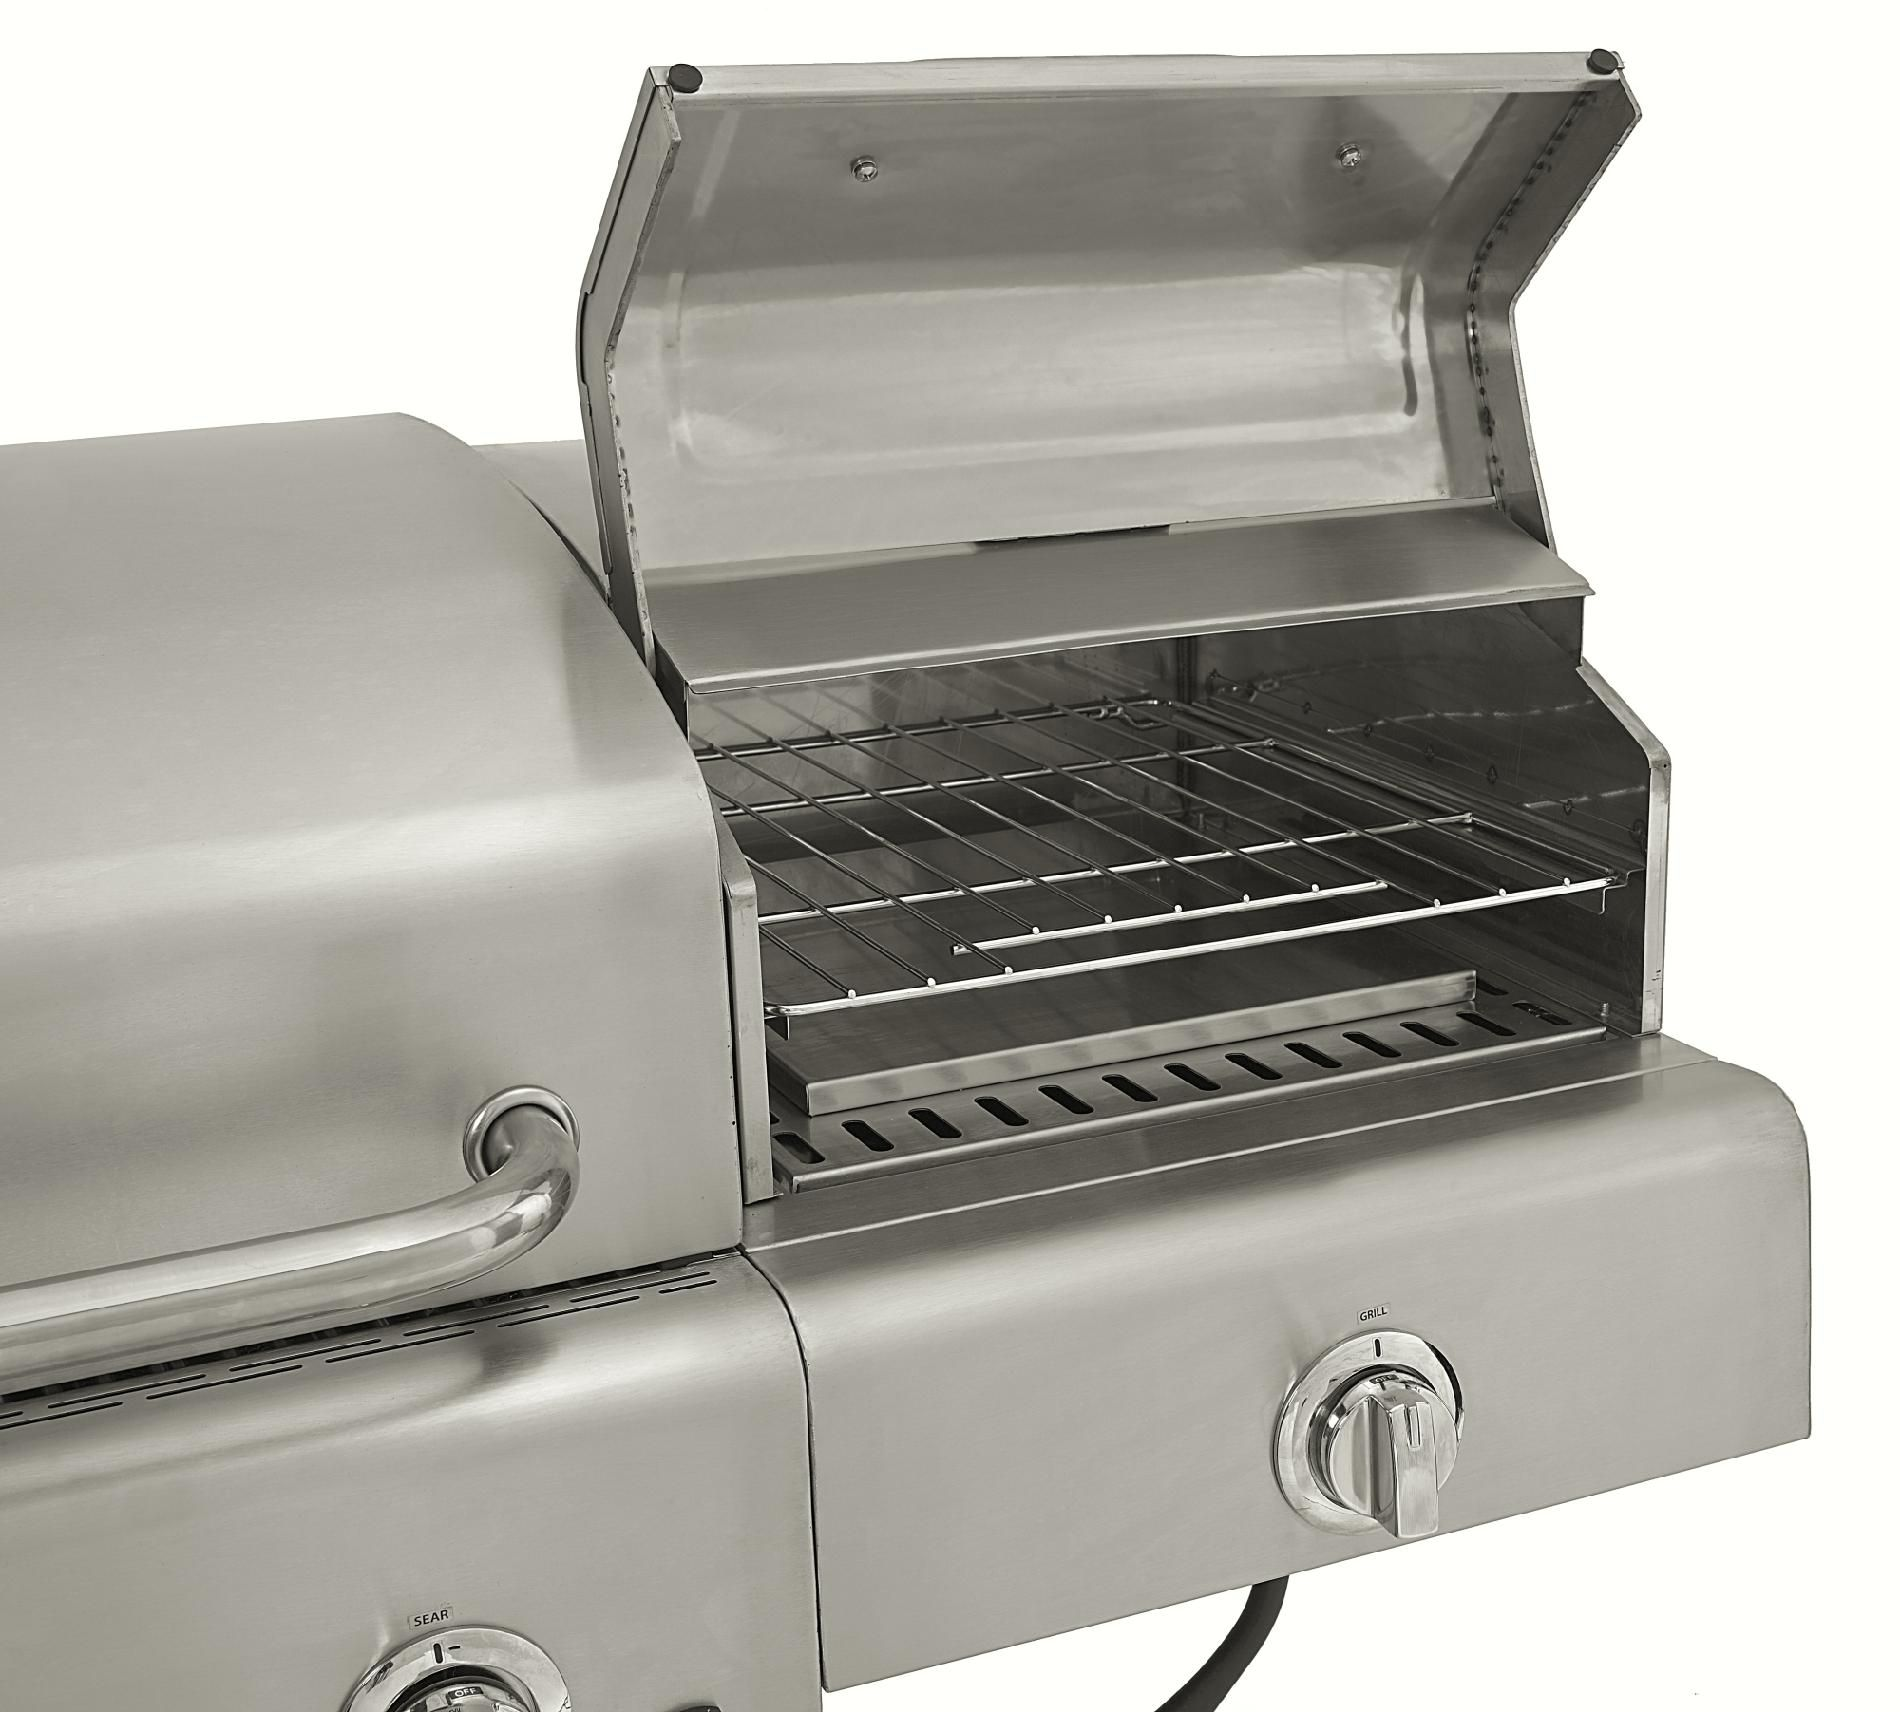 Kenmore Stainless Steel 4 Burner Gas Grill with Oven